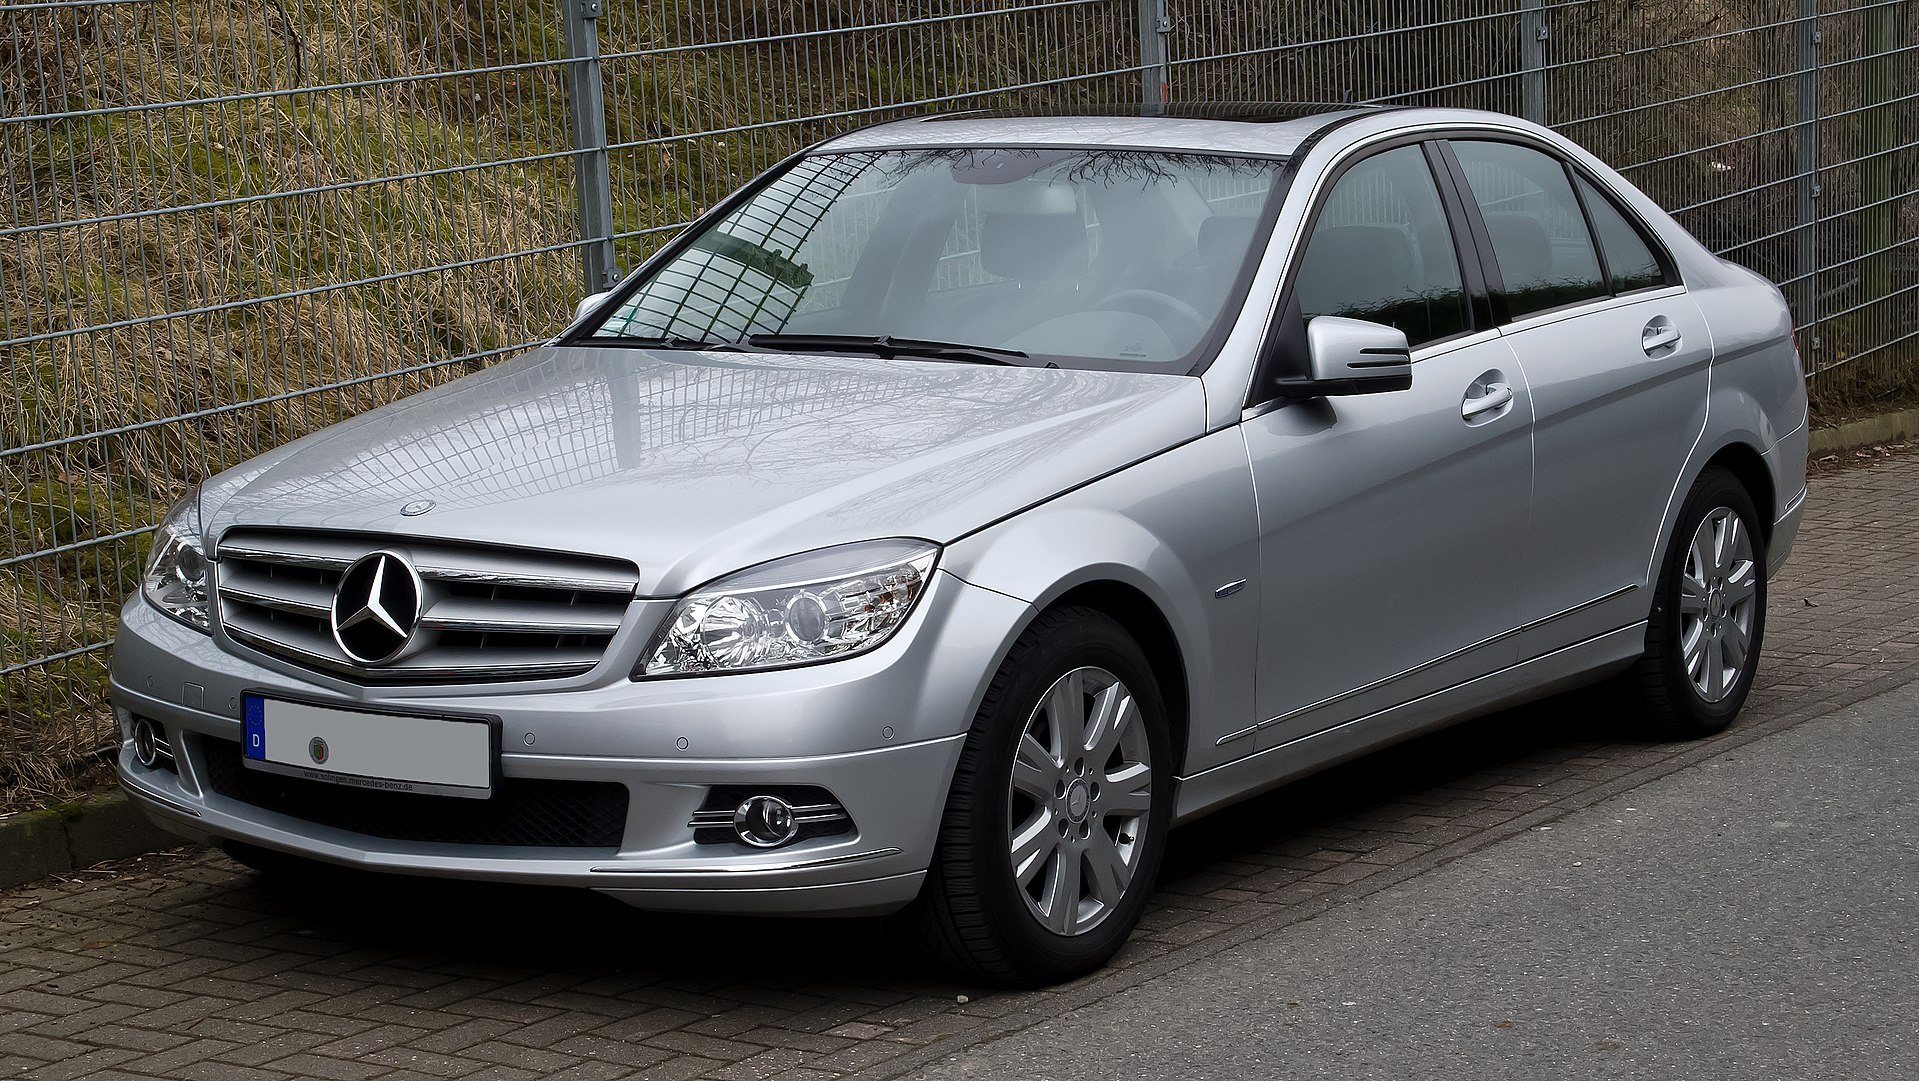 mercedes benz c class w204 wikipedia. Black Bedroom Furniture Sets. Home Design Ideas